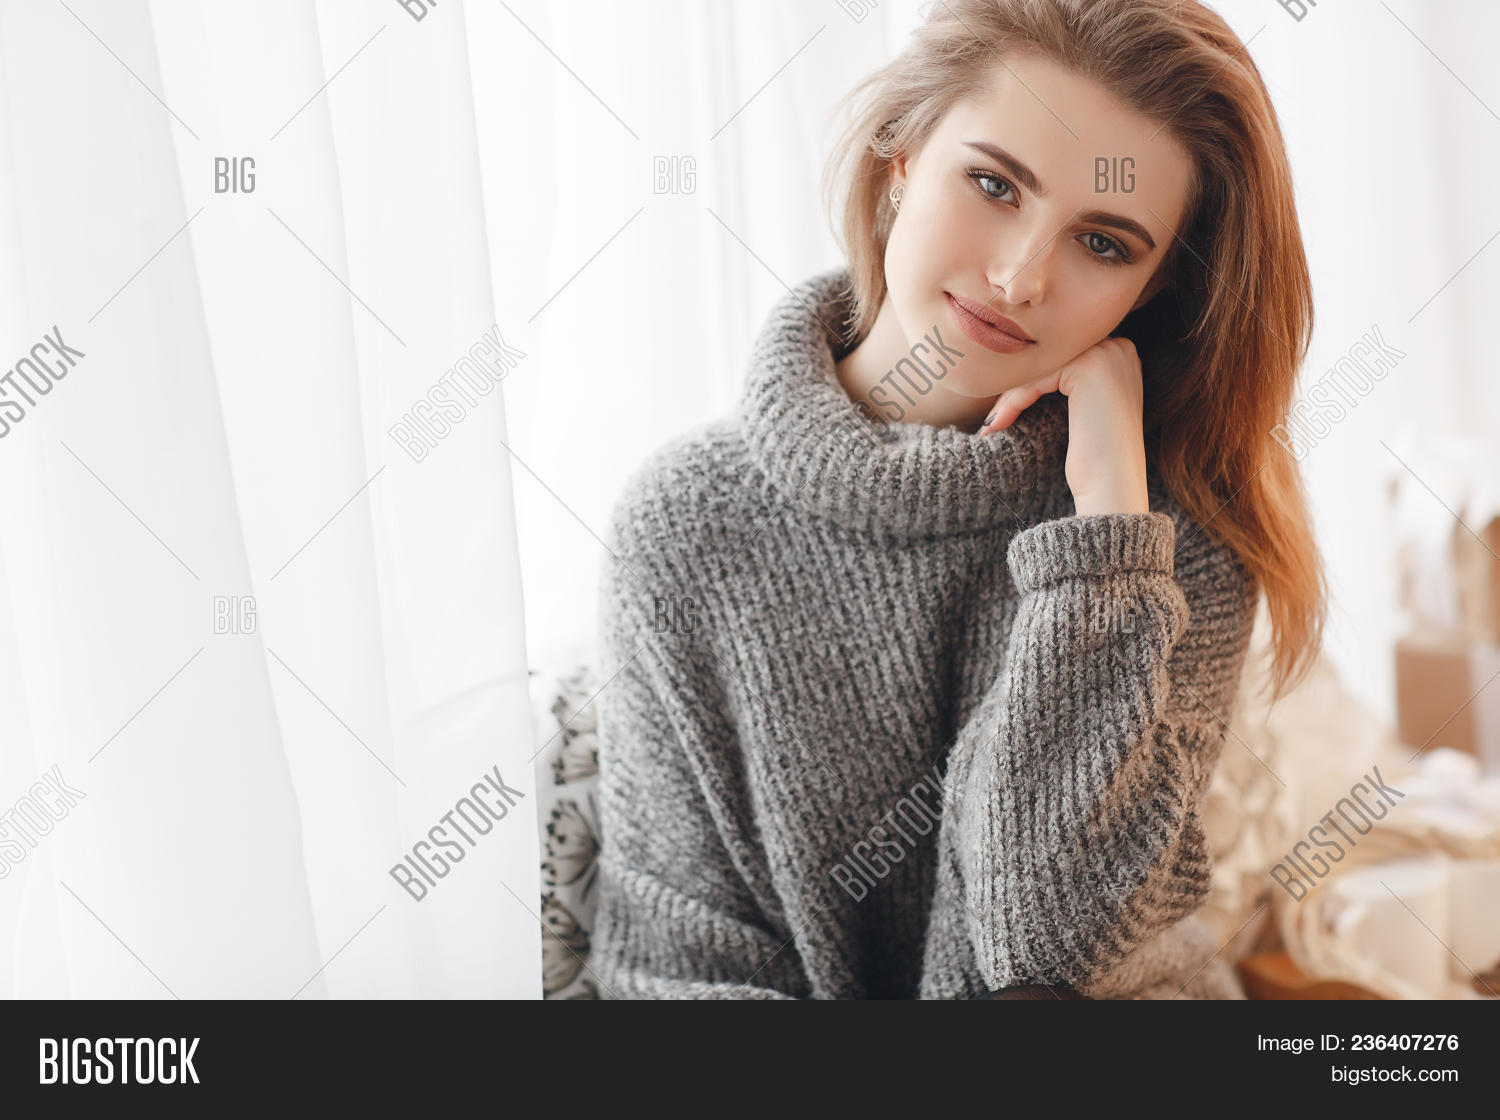 Beautiful Sexy Girl In An Elegant Gray Sweater. Close-up, Portrait Of A